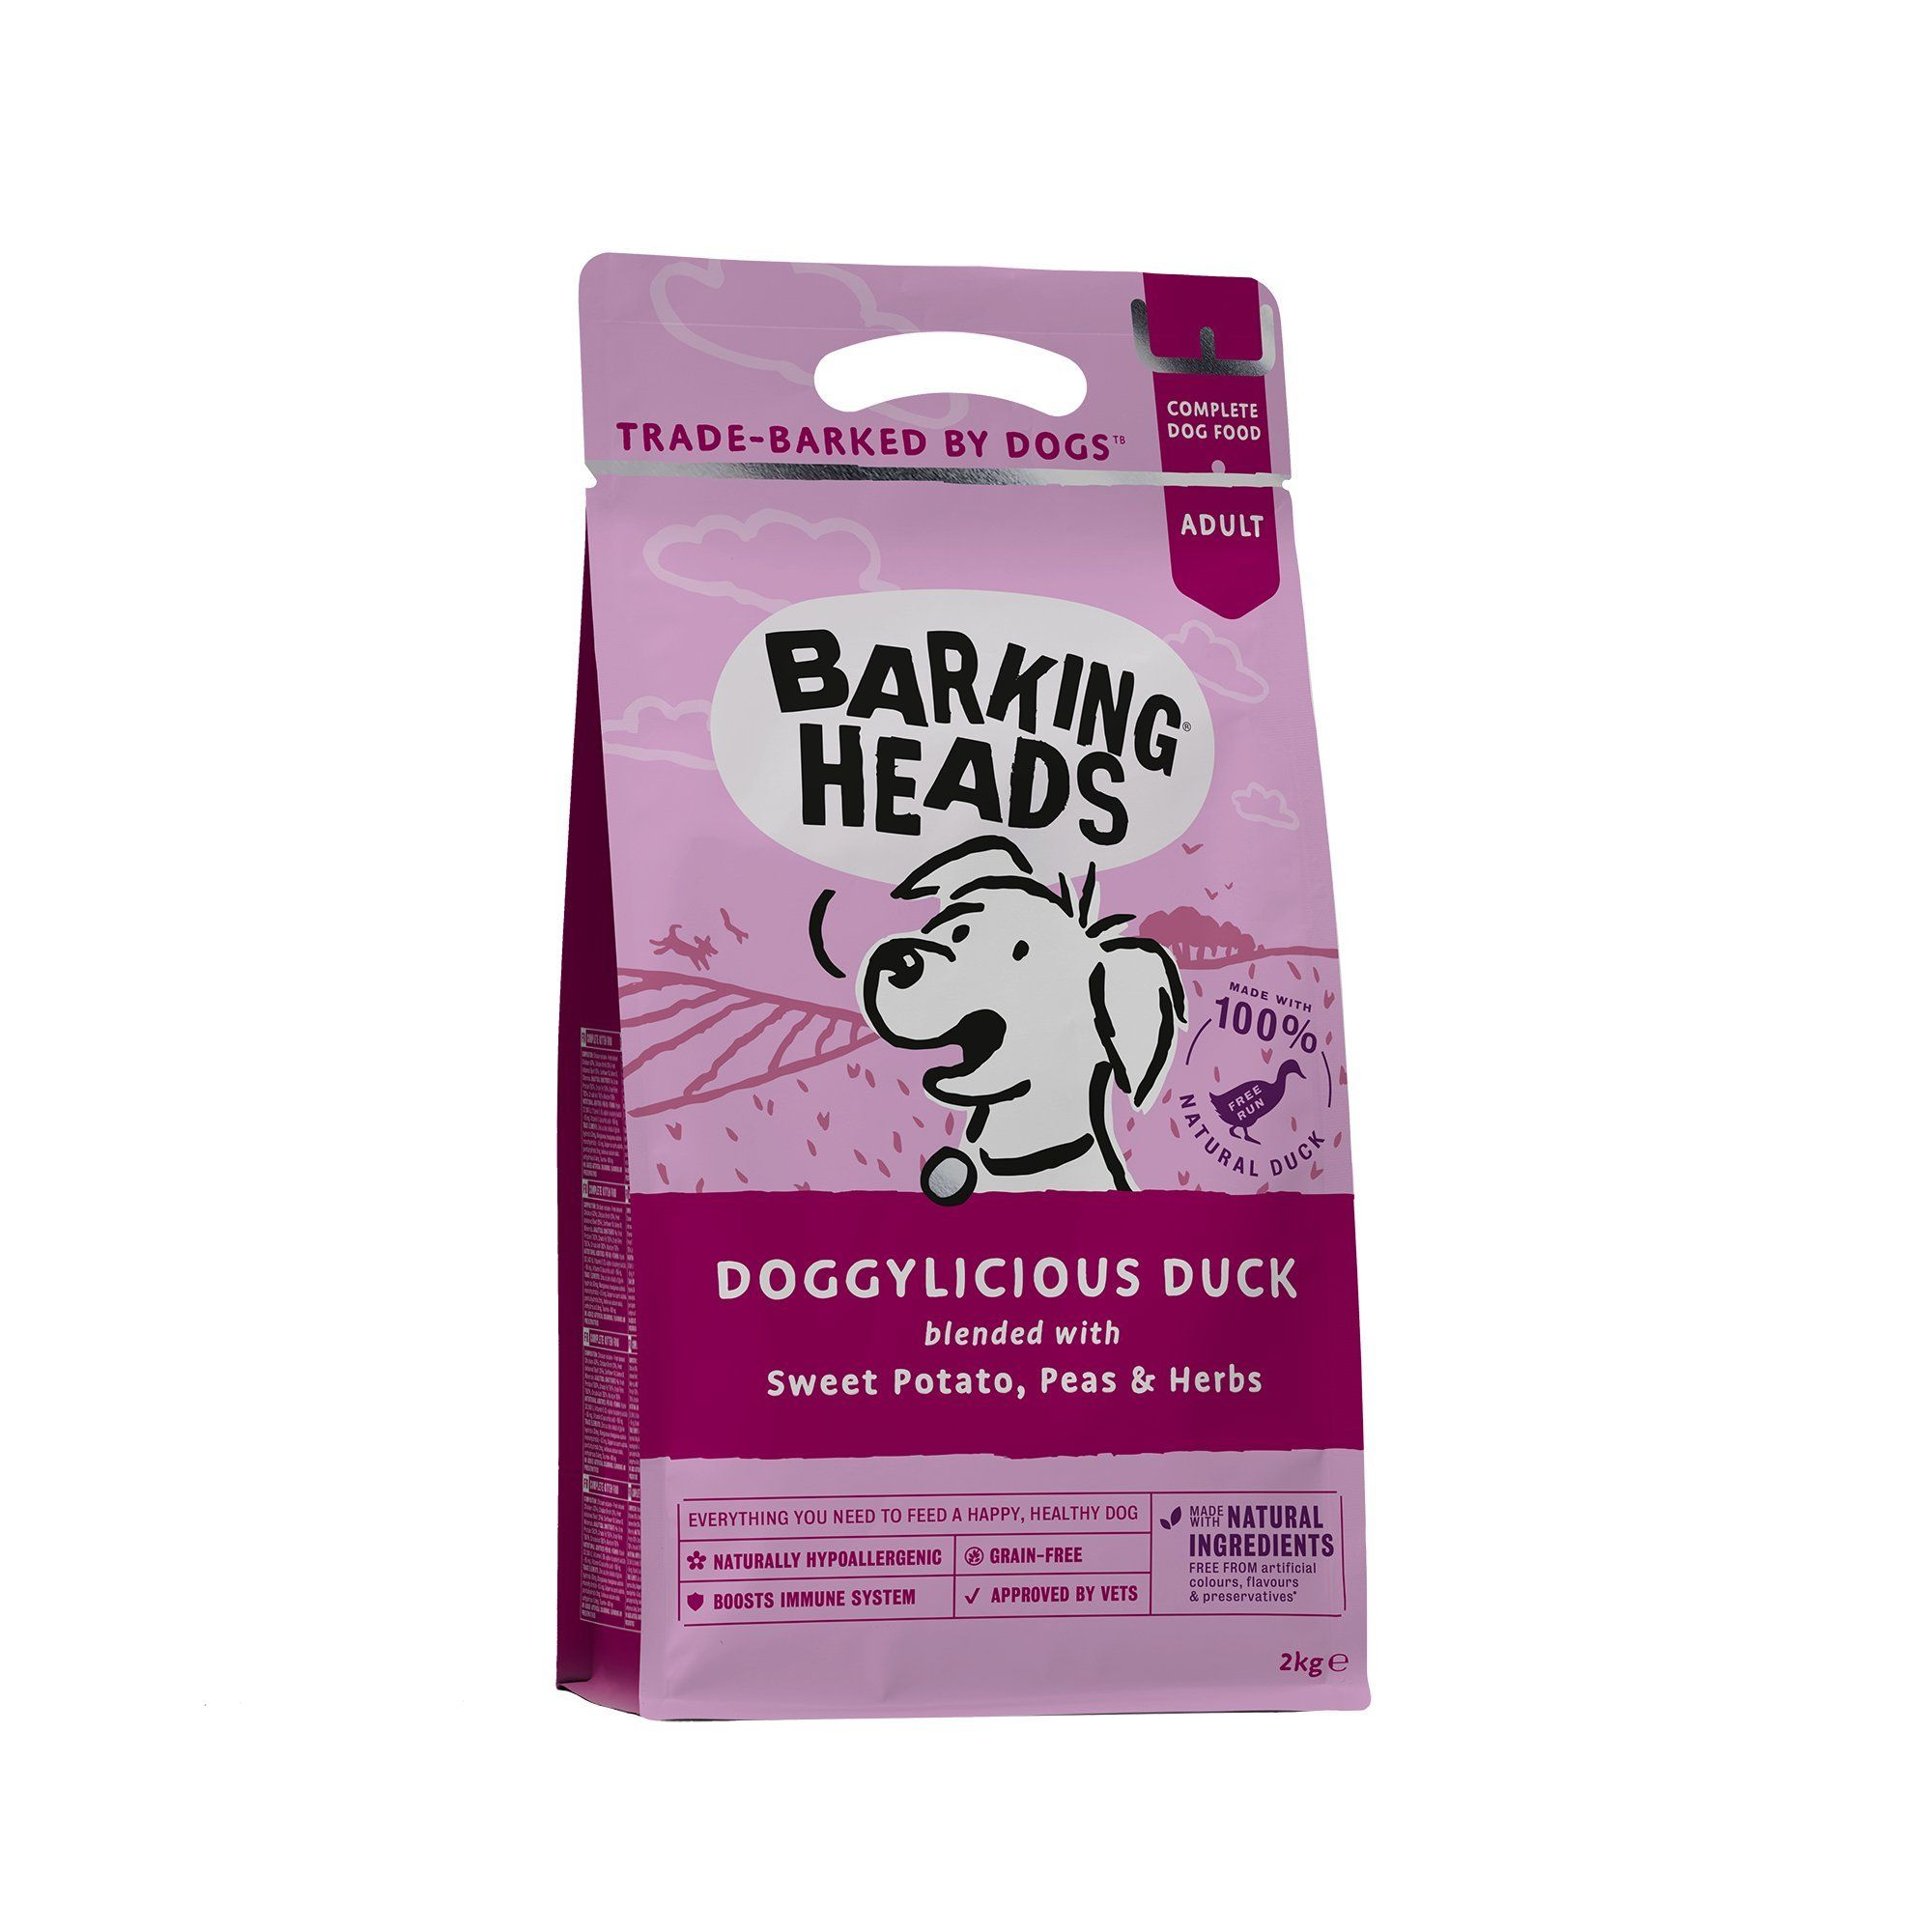 Barking Heads Dog Food Quackers Grain Free Duck 2kg Continue To